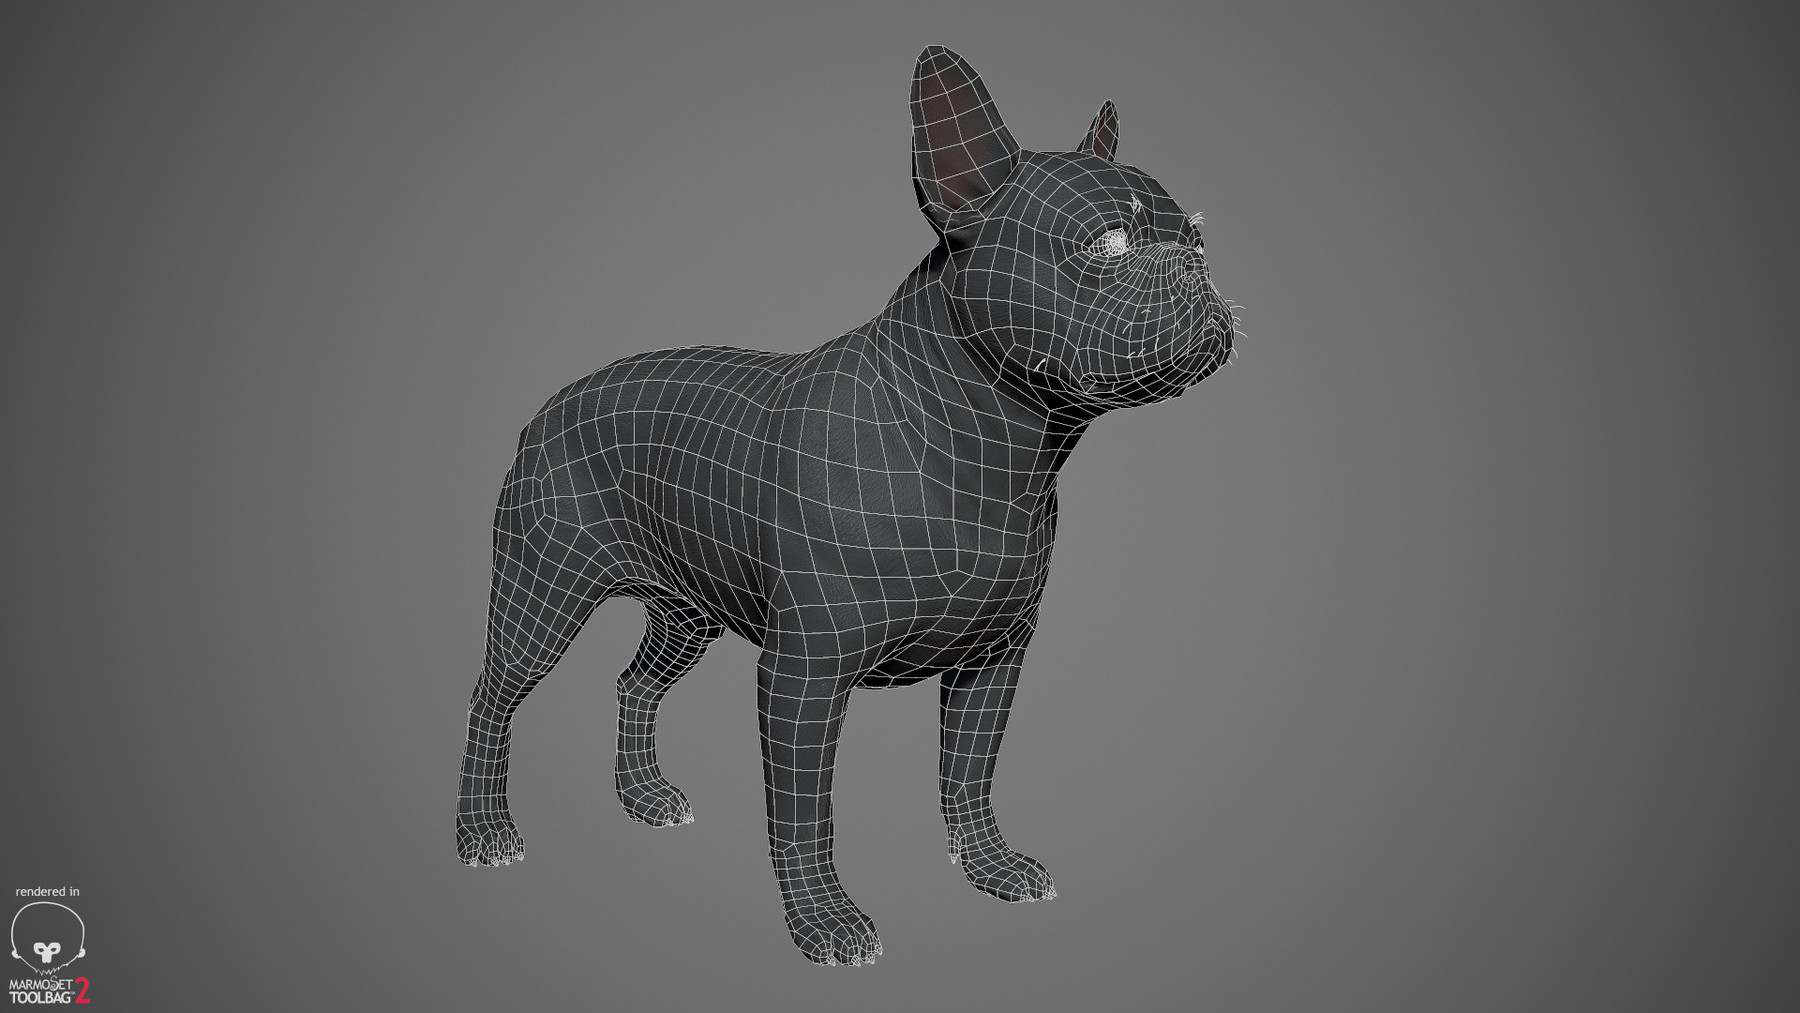 Frenchbulldog by alexlashko wireframe 01